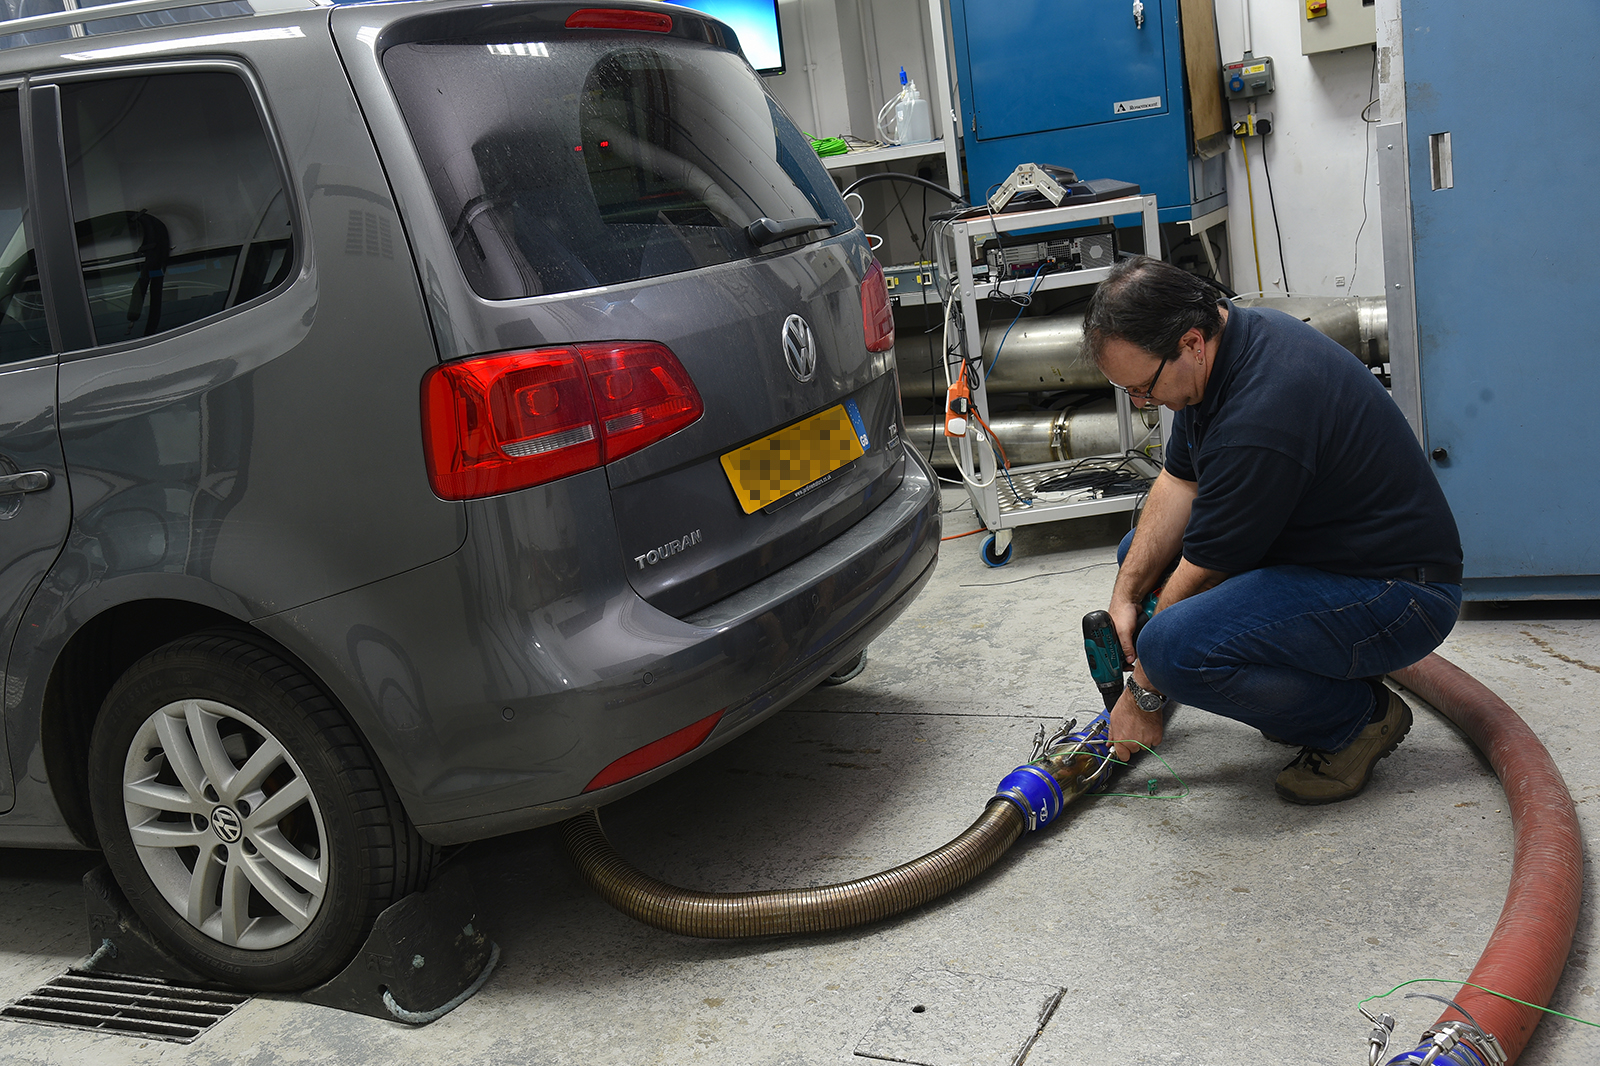 Autocar Test Shows Worse Economy After Volkswagen Diesel Fix Touran Exterior Light Control Wiring System Despite Vws Claim Supplied All Details Requested By The Manufacturer